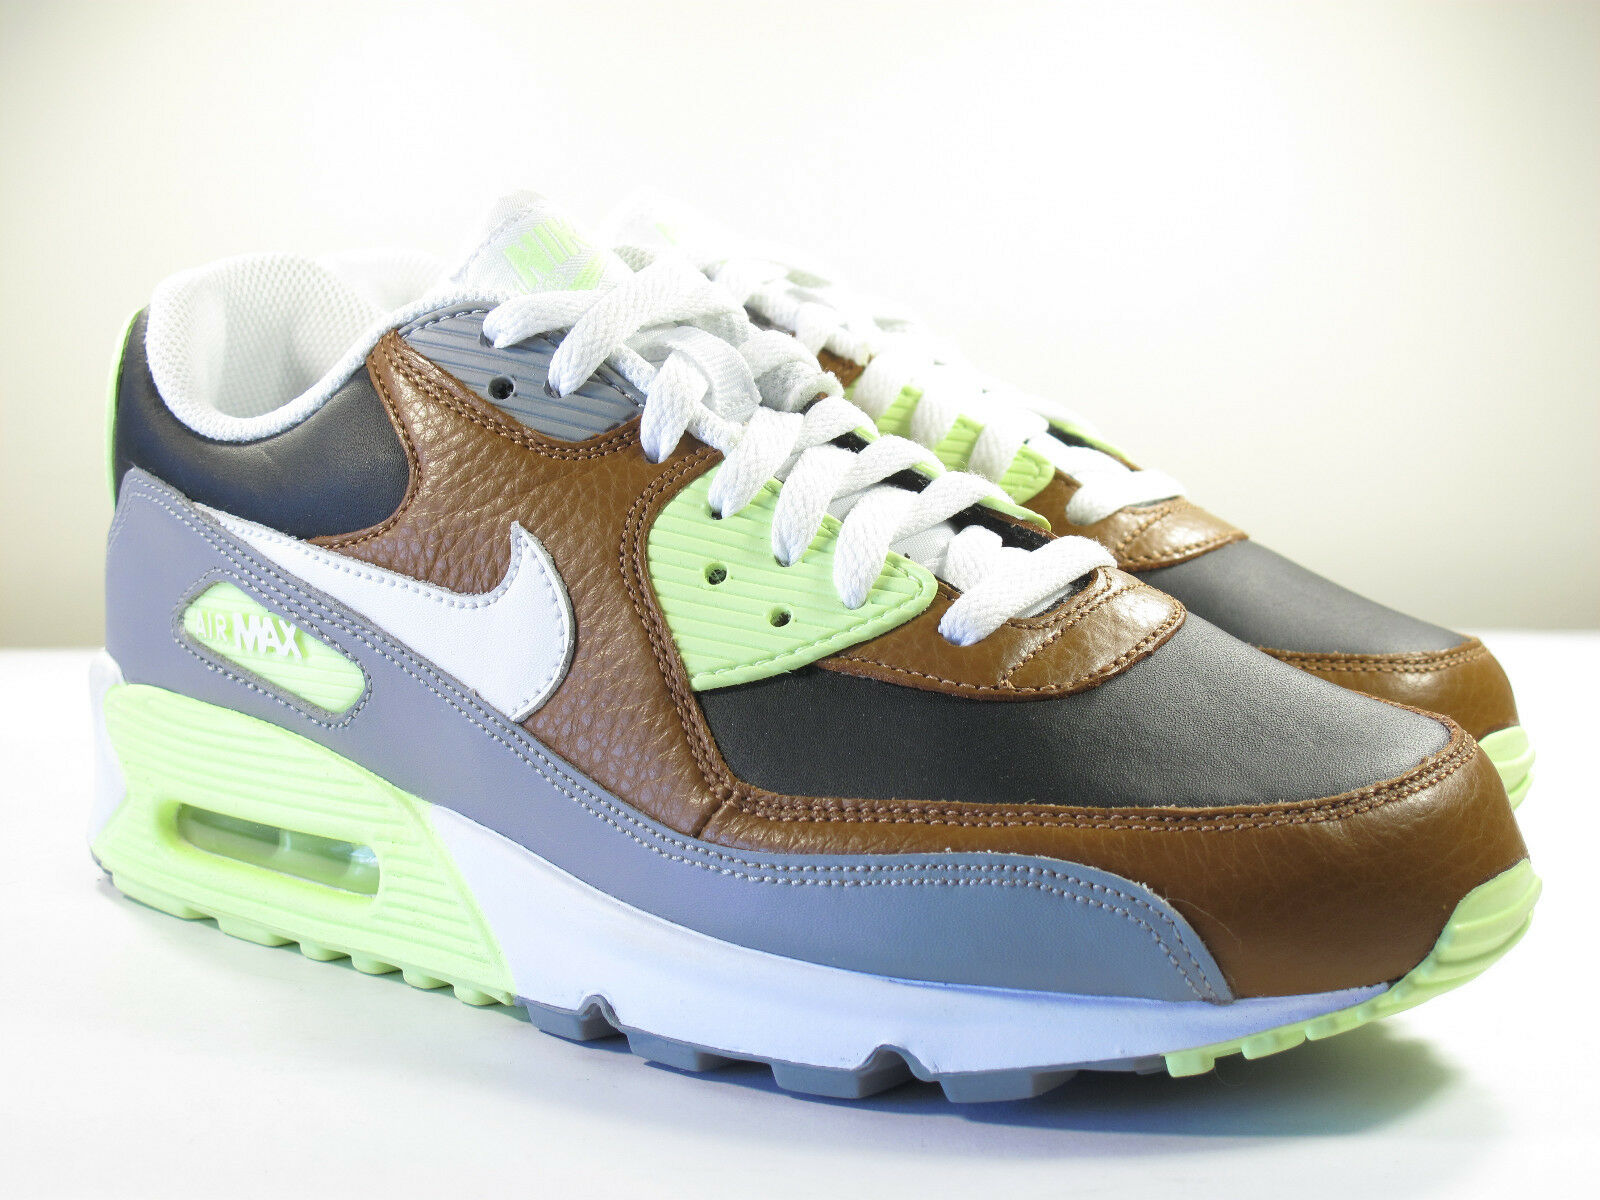 Ds nike air max 90 2011 stichprobe haselnuss haselnuss stichprobe - 9 - hyperfuse og 1 180 95. 34553c